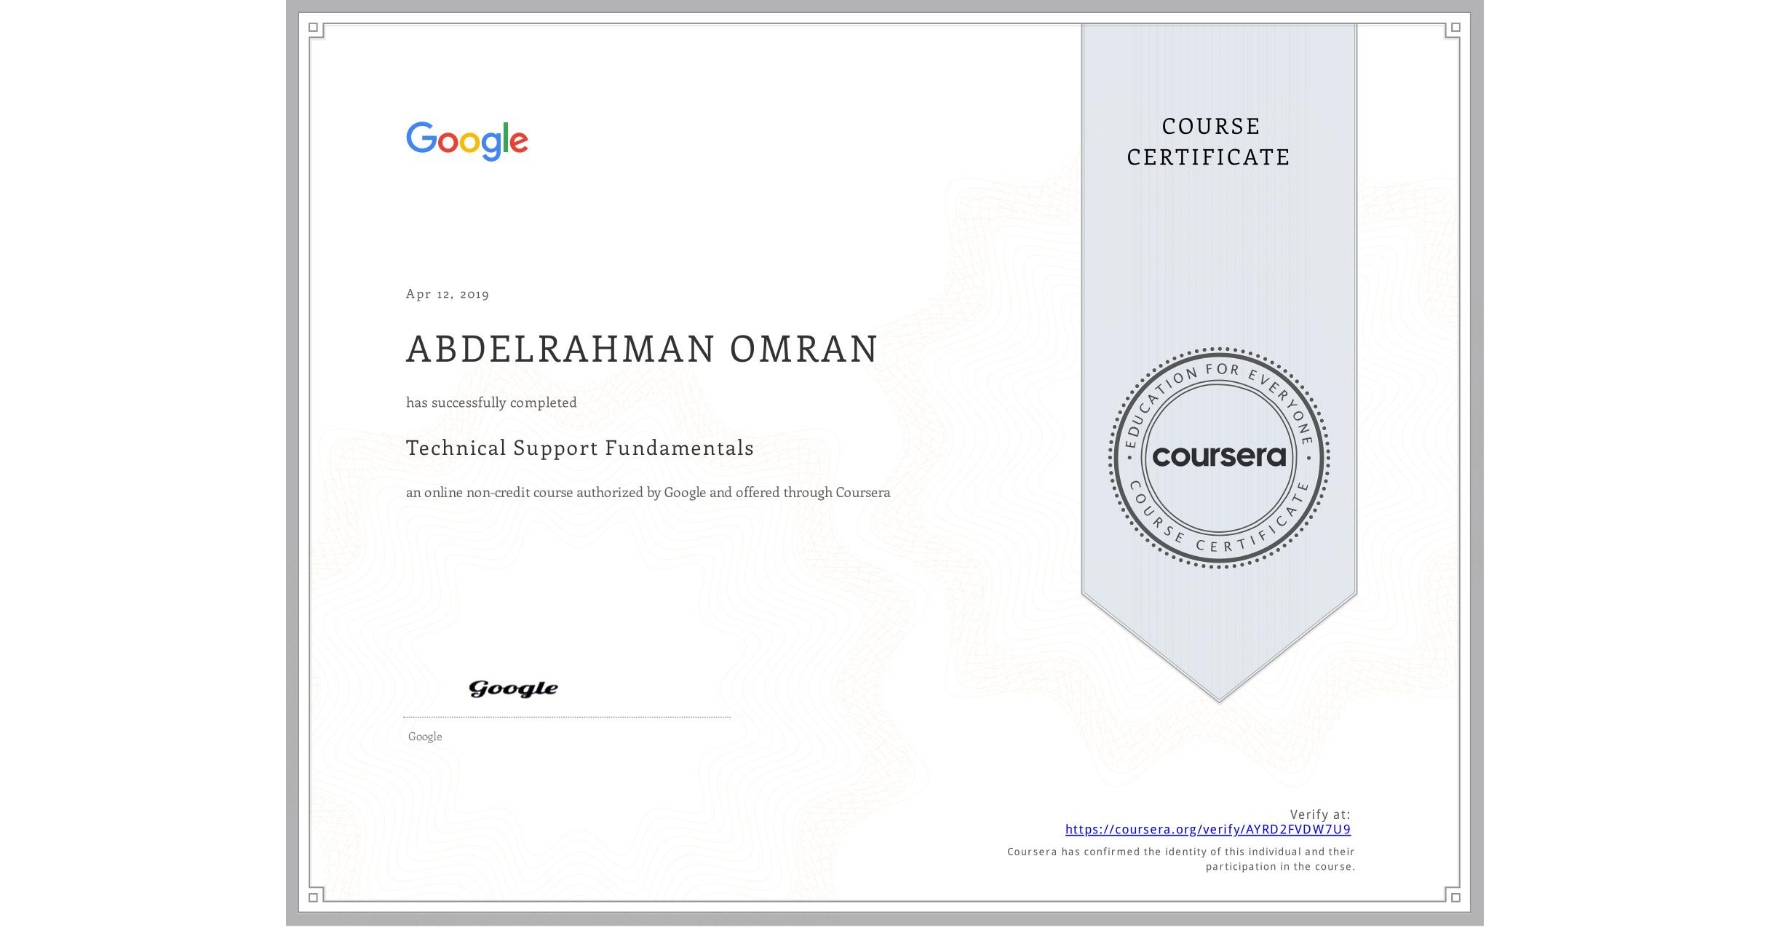 View certificate for ABDELRAHMAN OMRAN, Technical Support Fundamentals, an online non-credit course authorized by Google and offered through Coursera